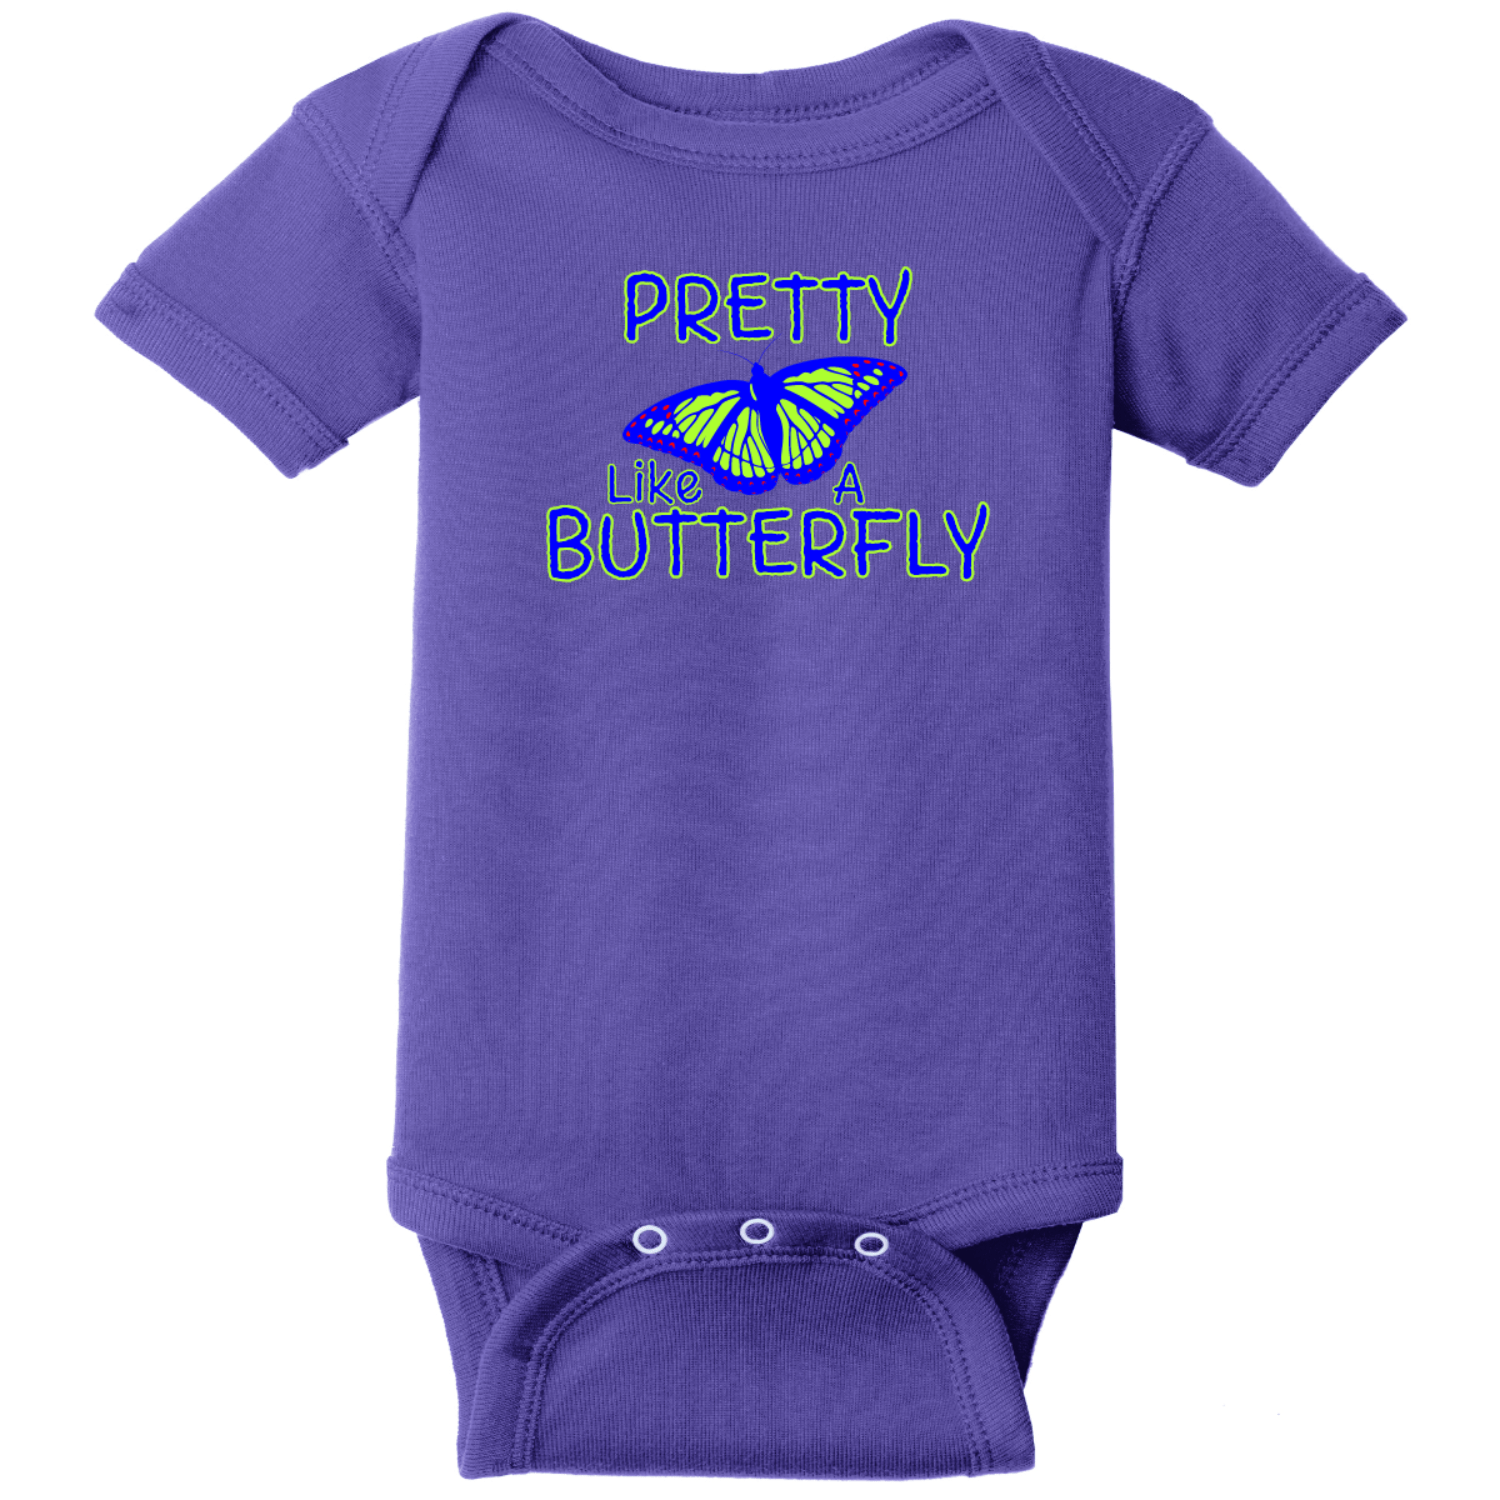 Pretty Like A Butterfly Baby Bodysuit Purple Rabbit Skins Infant Short Sleeve Infant Rib Bodysuit RS4400